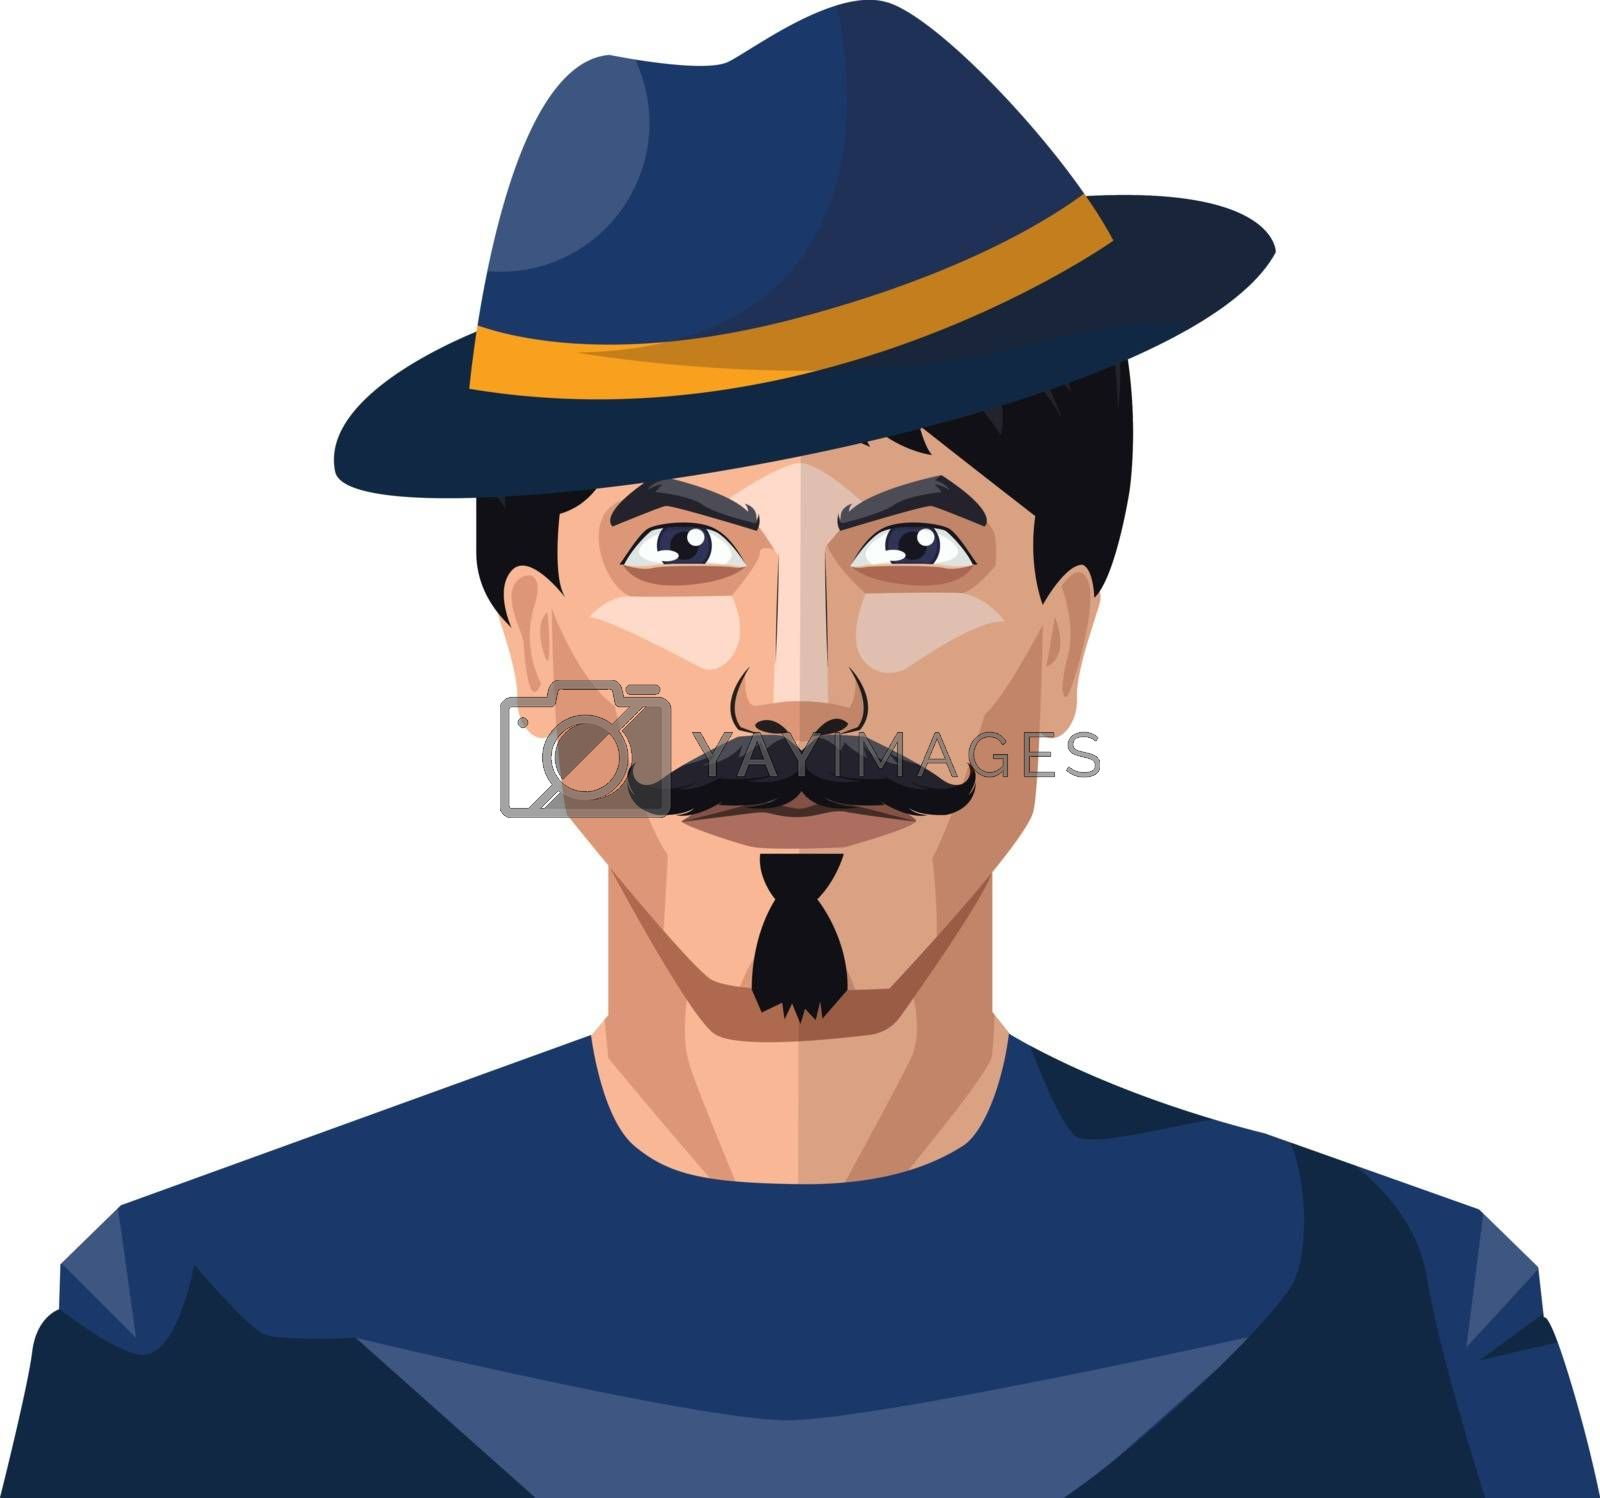 Royalty free image of Guy wearing a blue hat and shirt illustration vector on white ba by Morphart